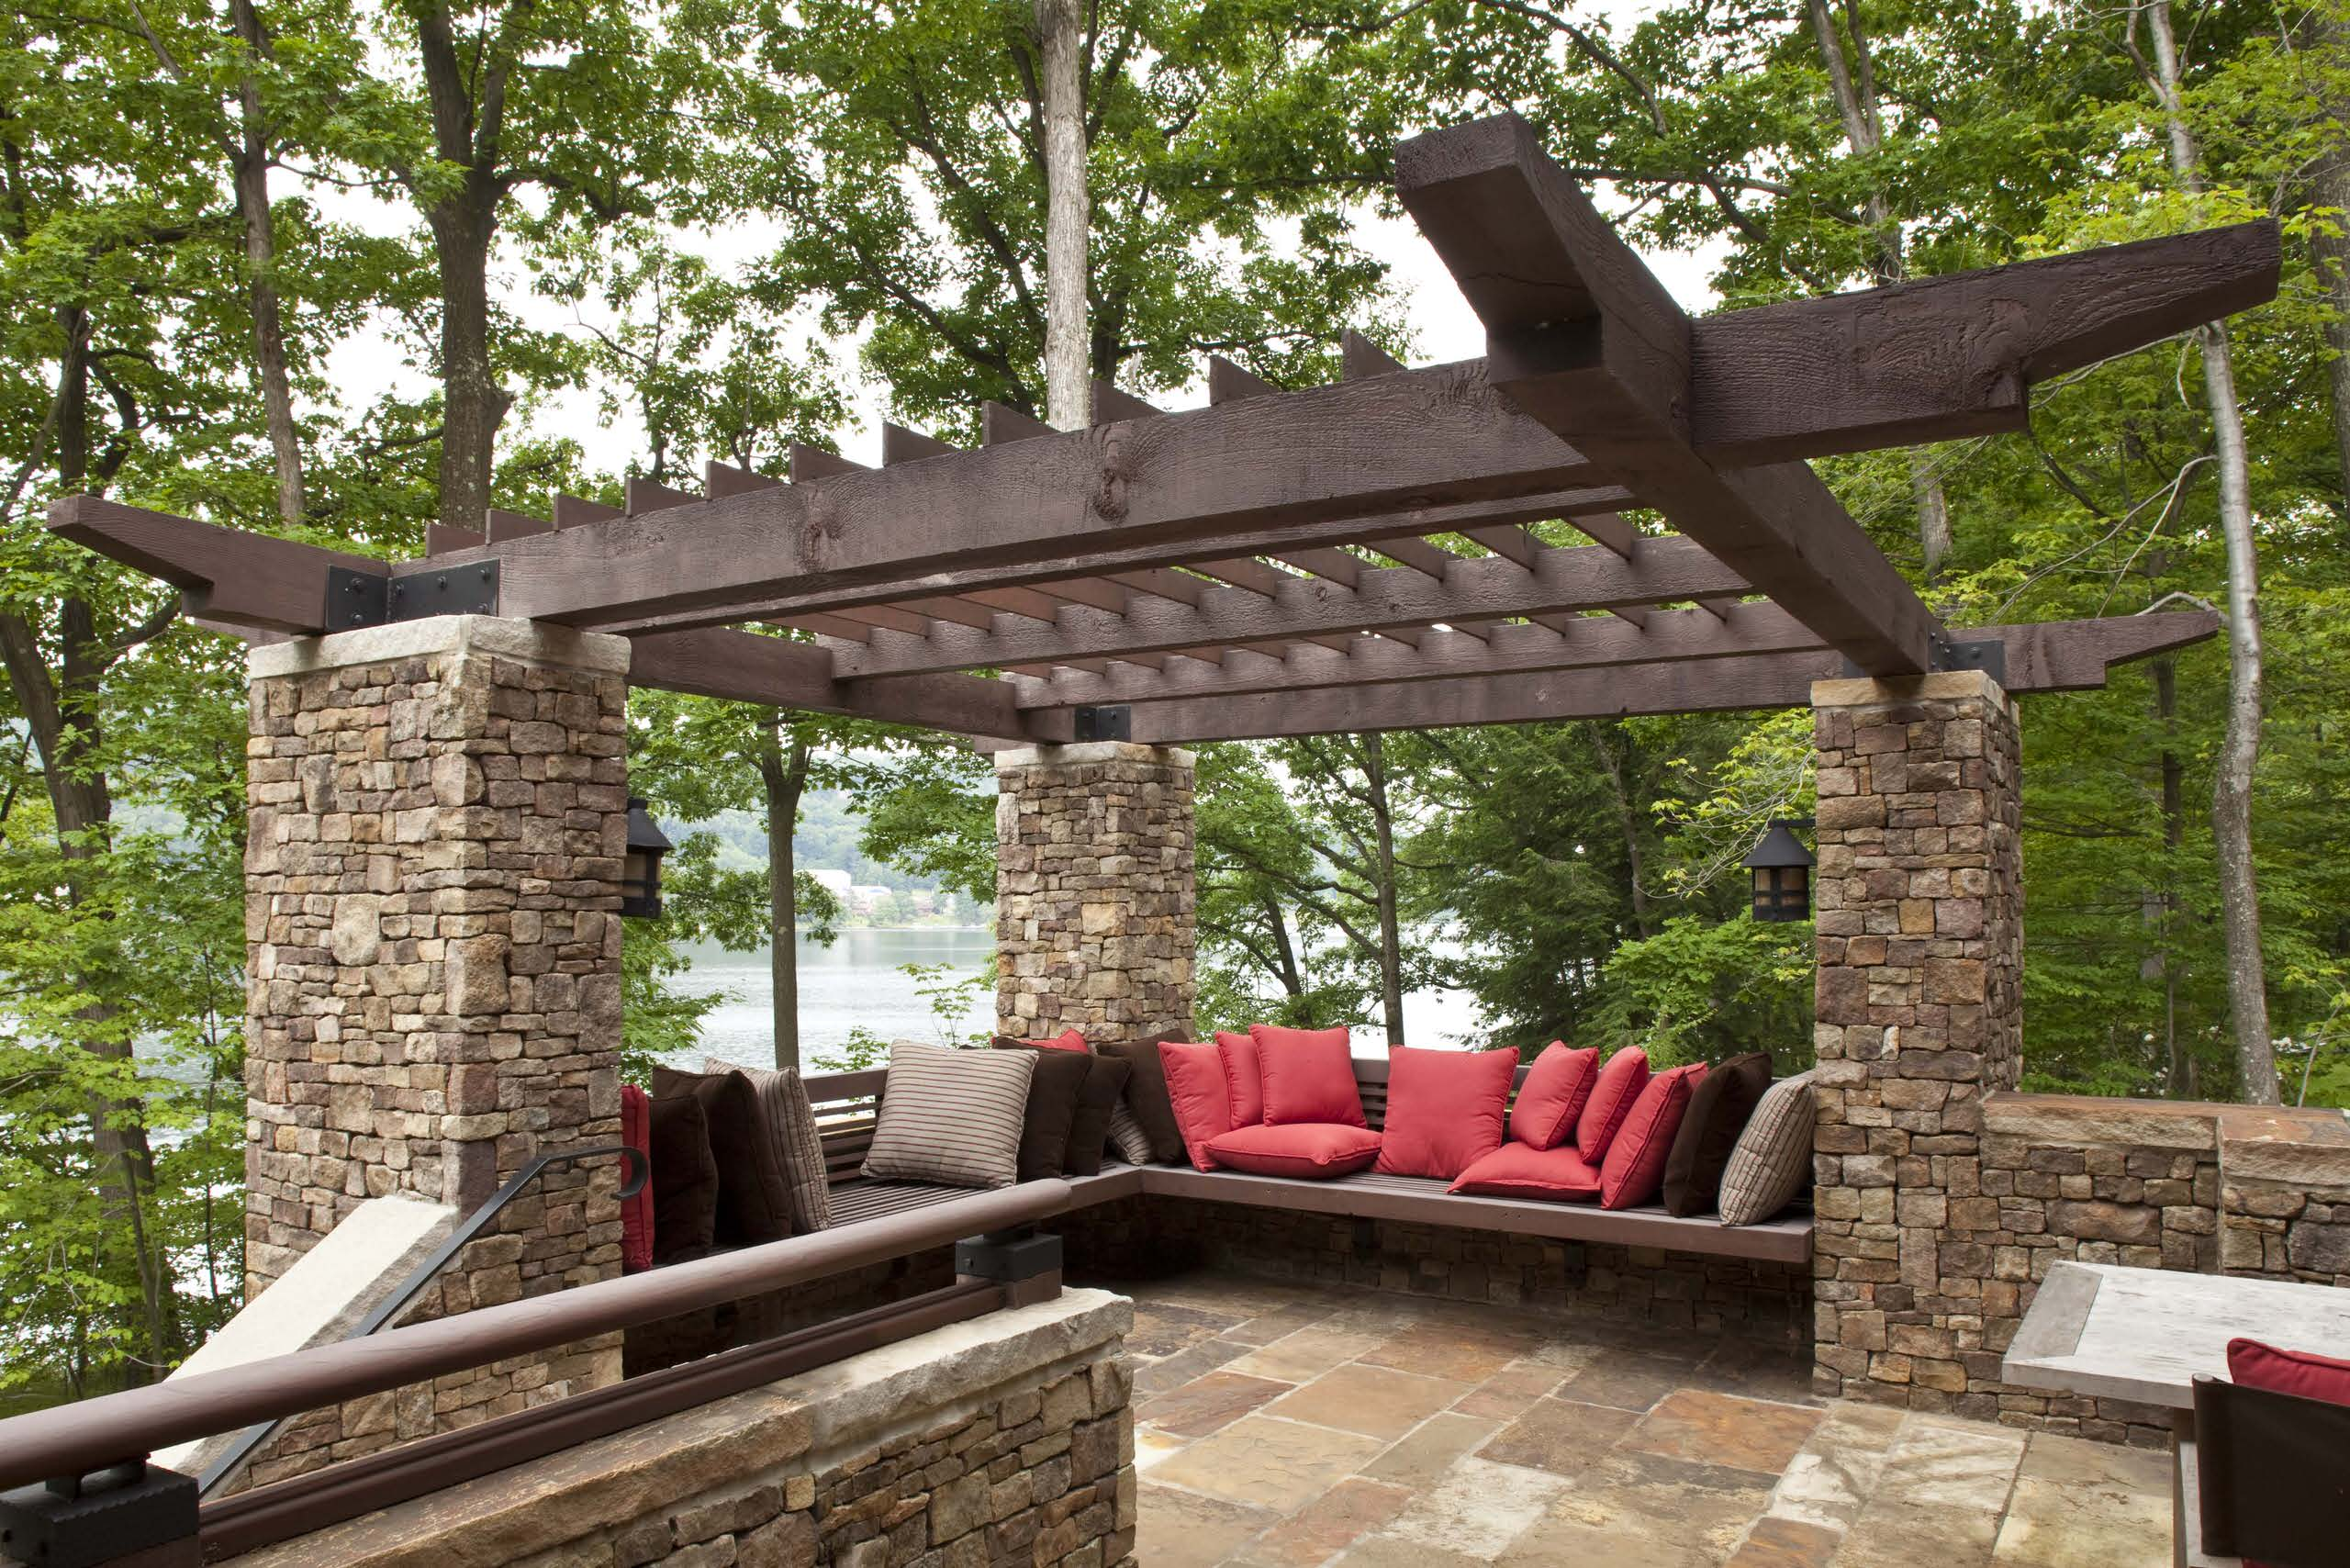 Inspiring Exterior House plus Pergola Ideas: Arts And Crafts With Built In Bench Plus Cantilever And Cross Beams With Dark Wood Pergola And Outdoor Cushions For Outdoor Living With Pergola Ideas And Stone Veneer Columns Plus Waterfront